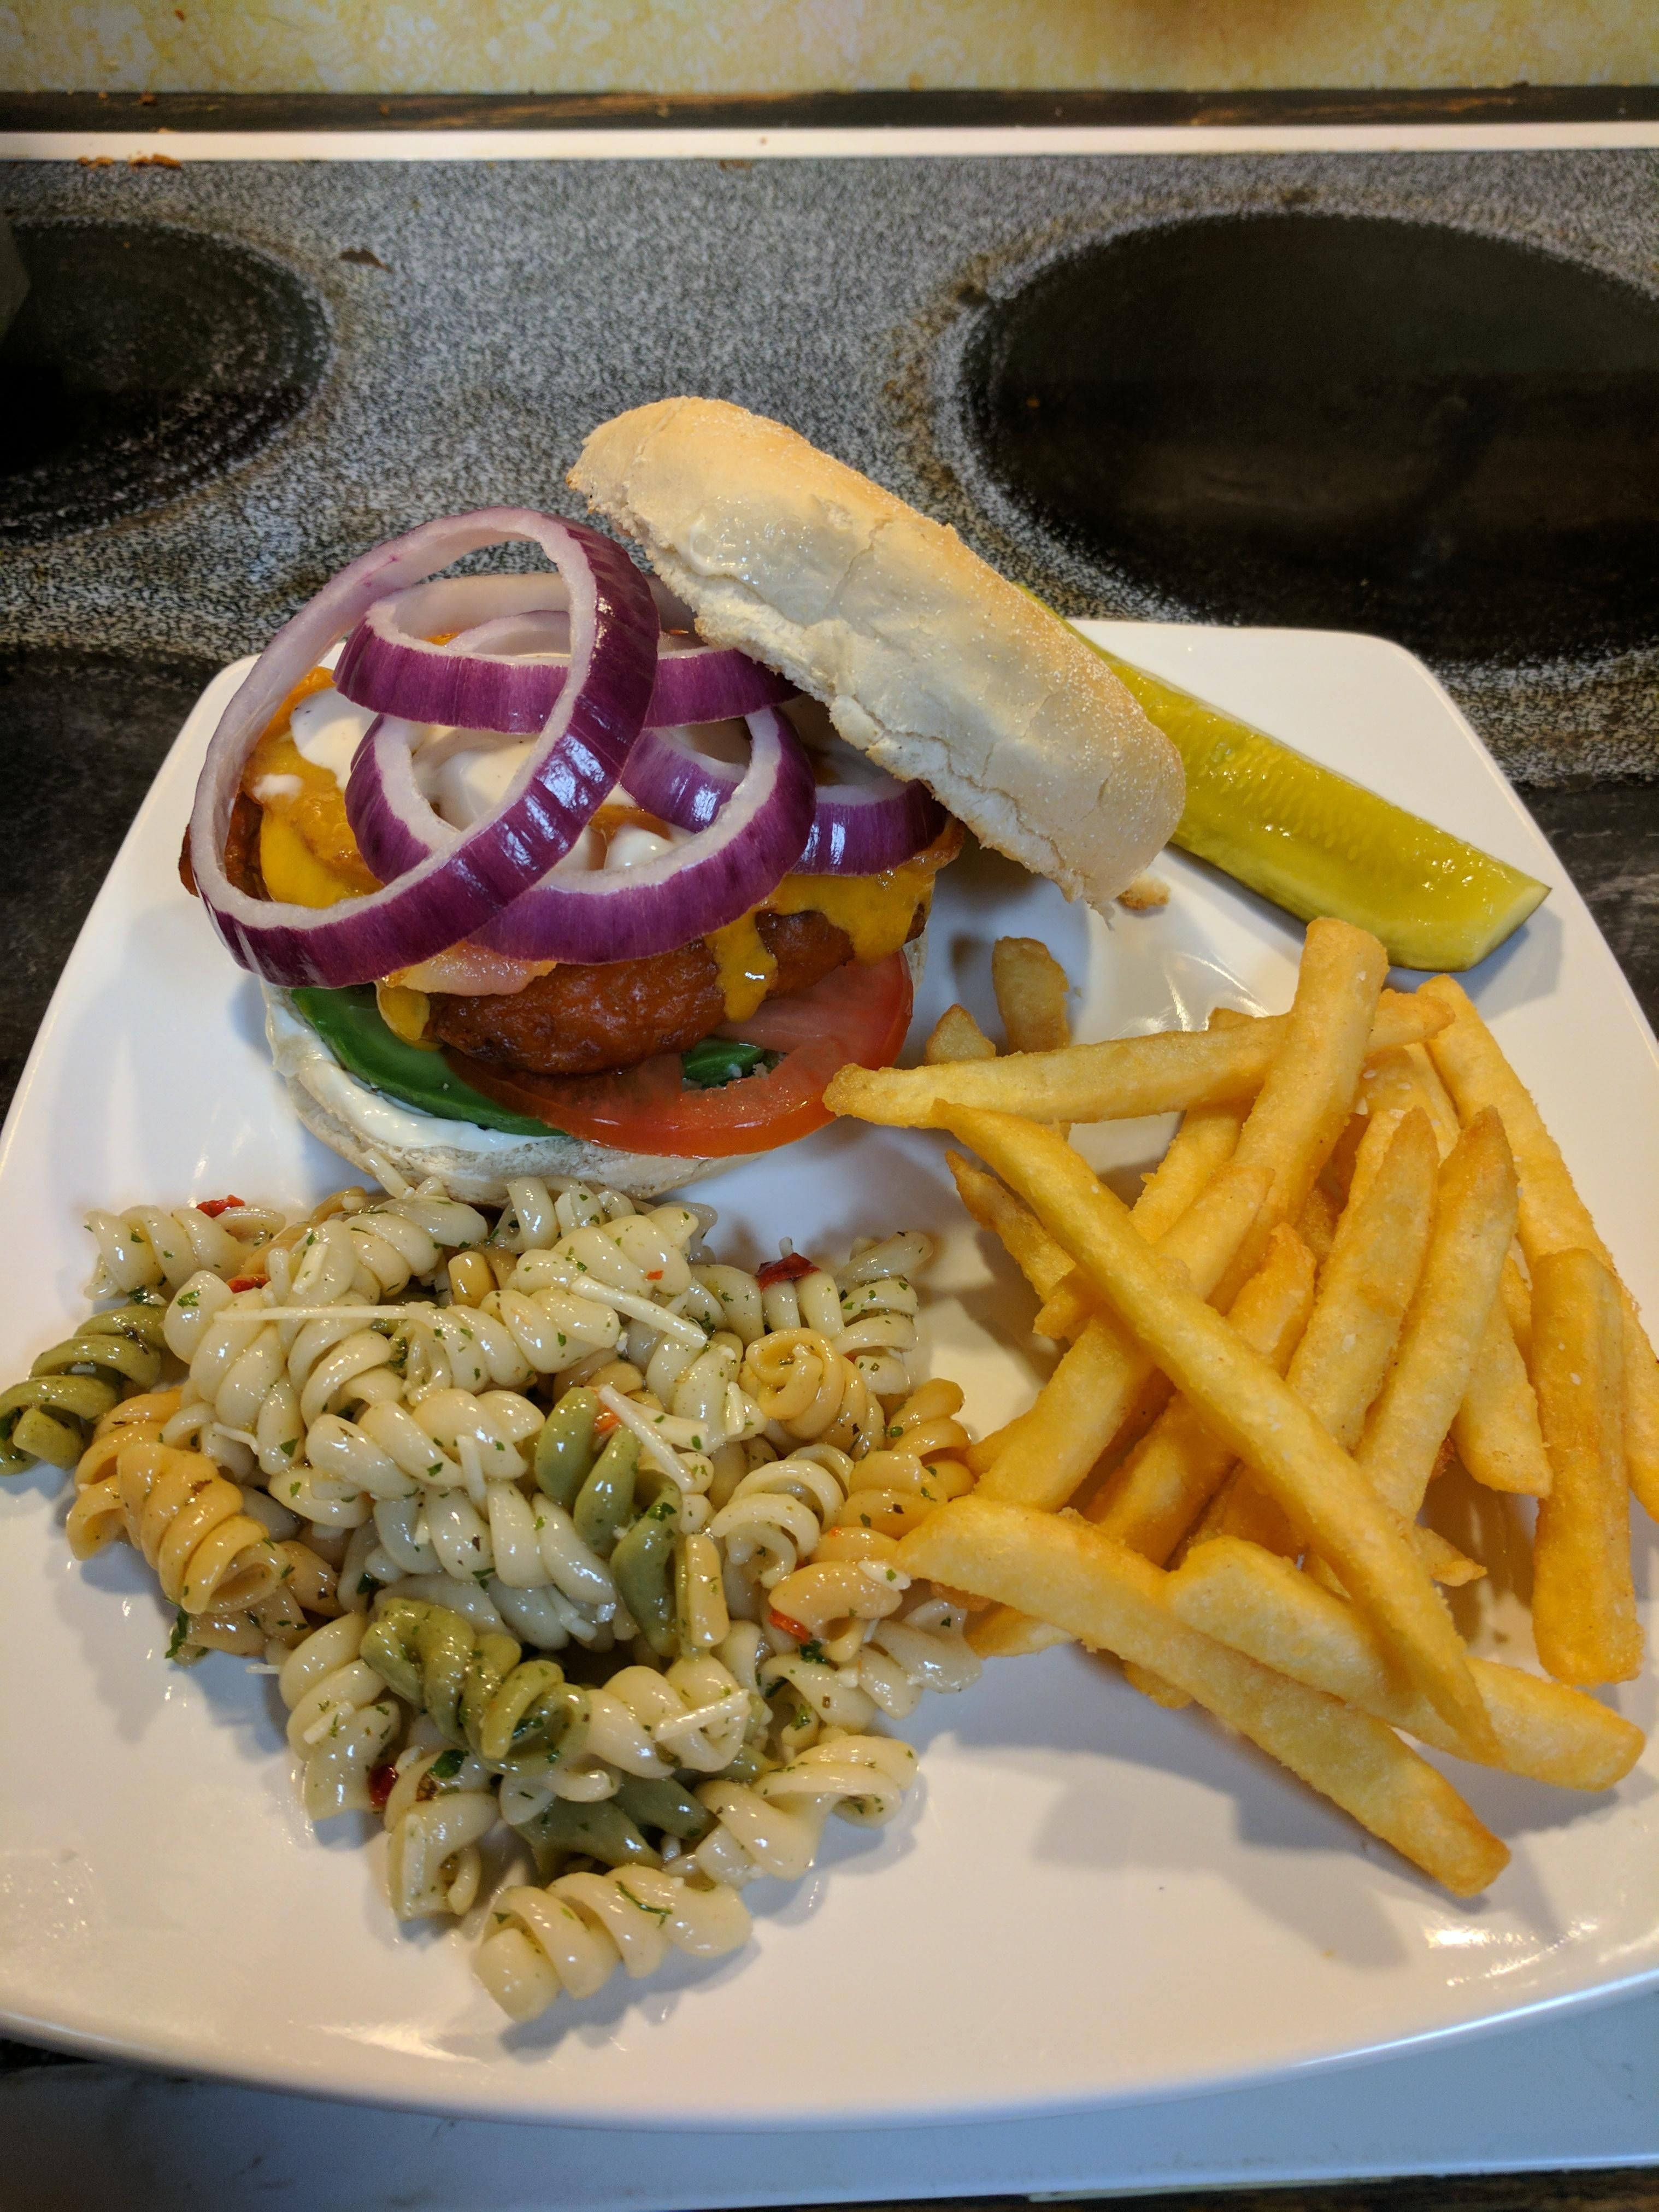 [homemade] Buffalo Ranch Chicken Sandwich. #recipes #food #cooking #delicious #foodie #foodrecipes #cook #recipe #health